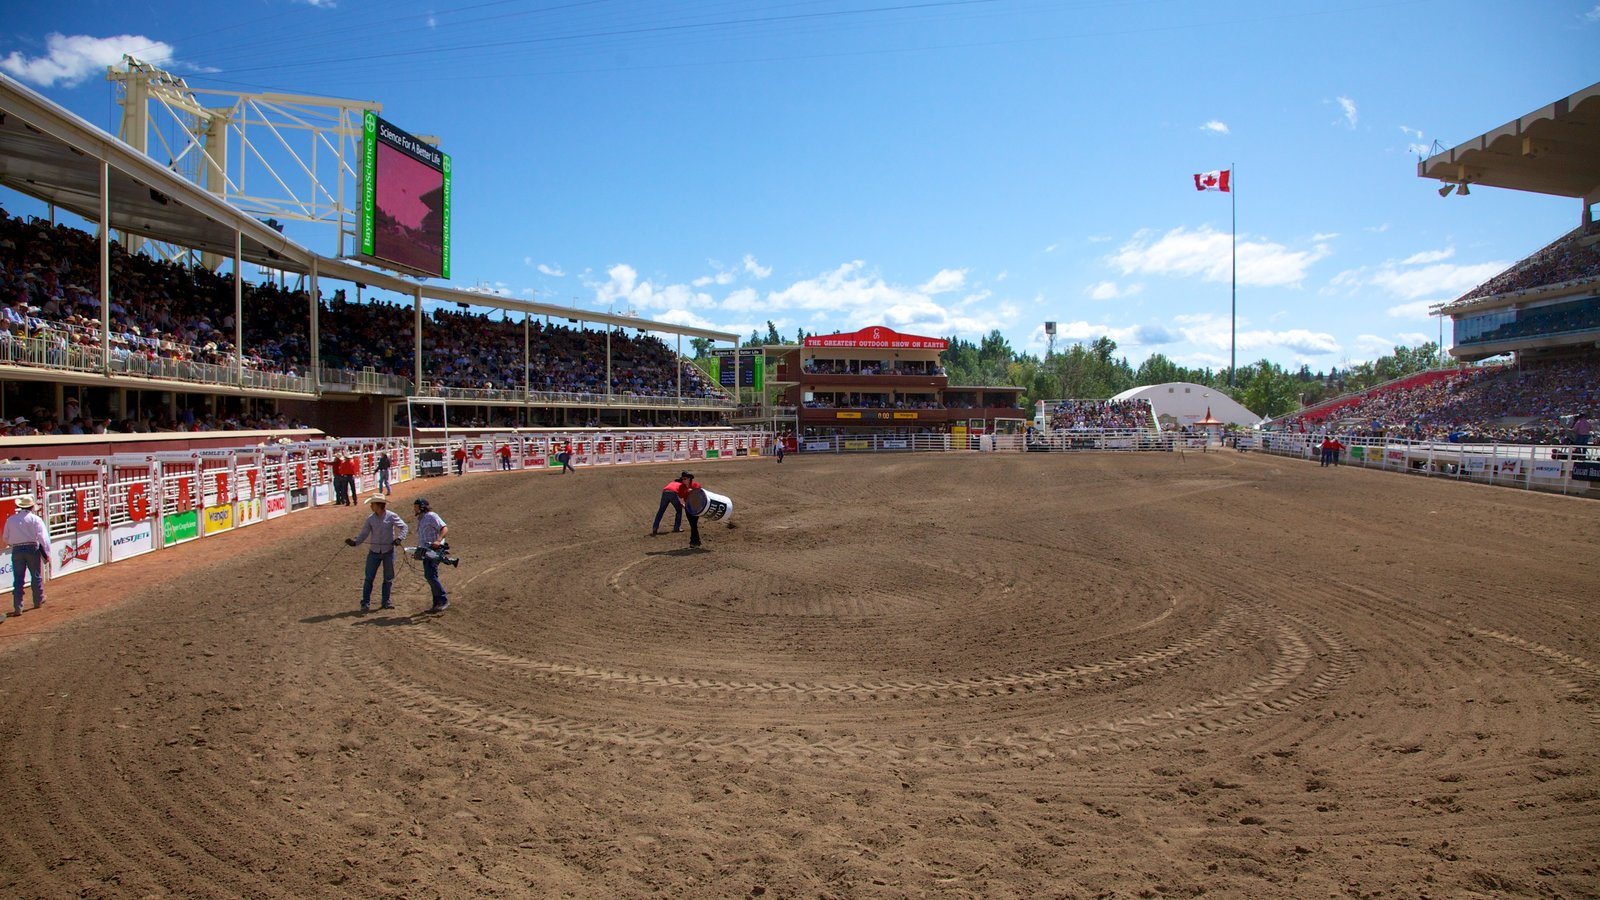 Alberta which includes a sporting event and horse riding